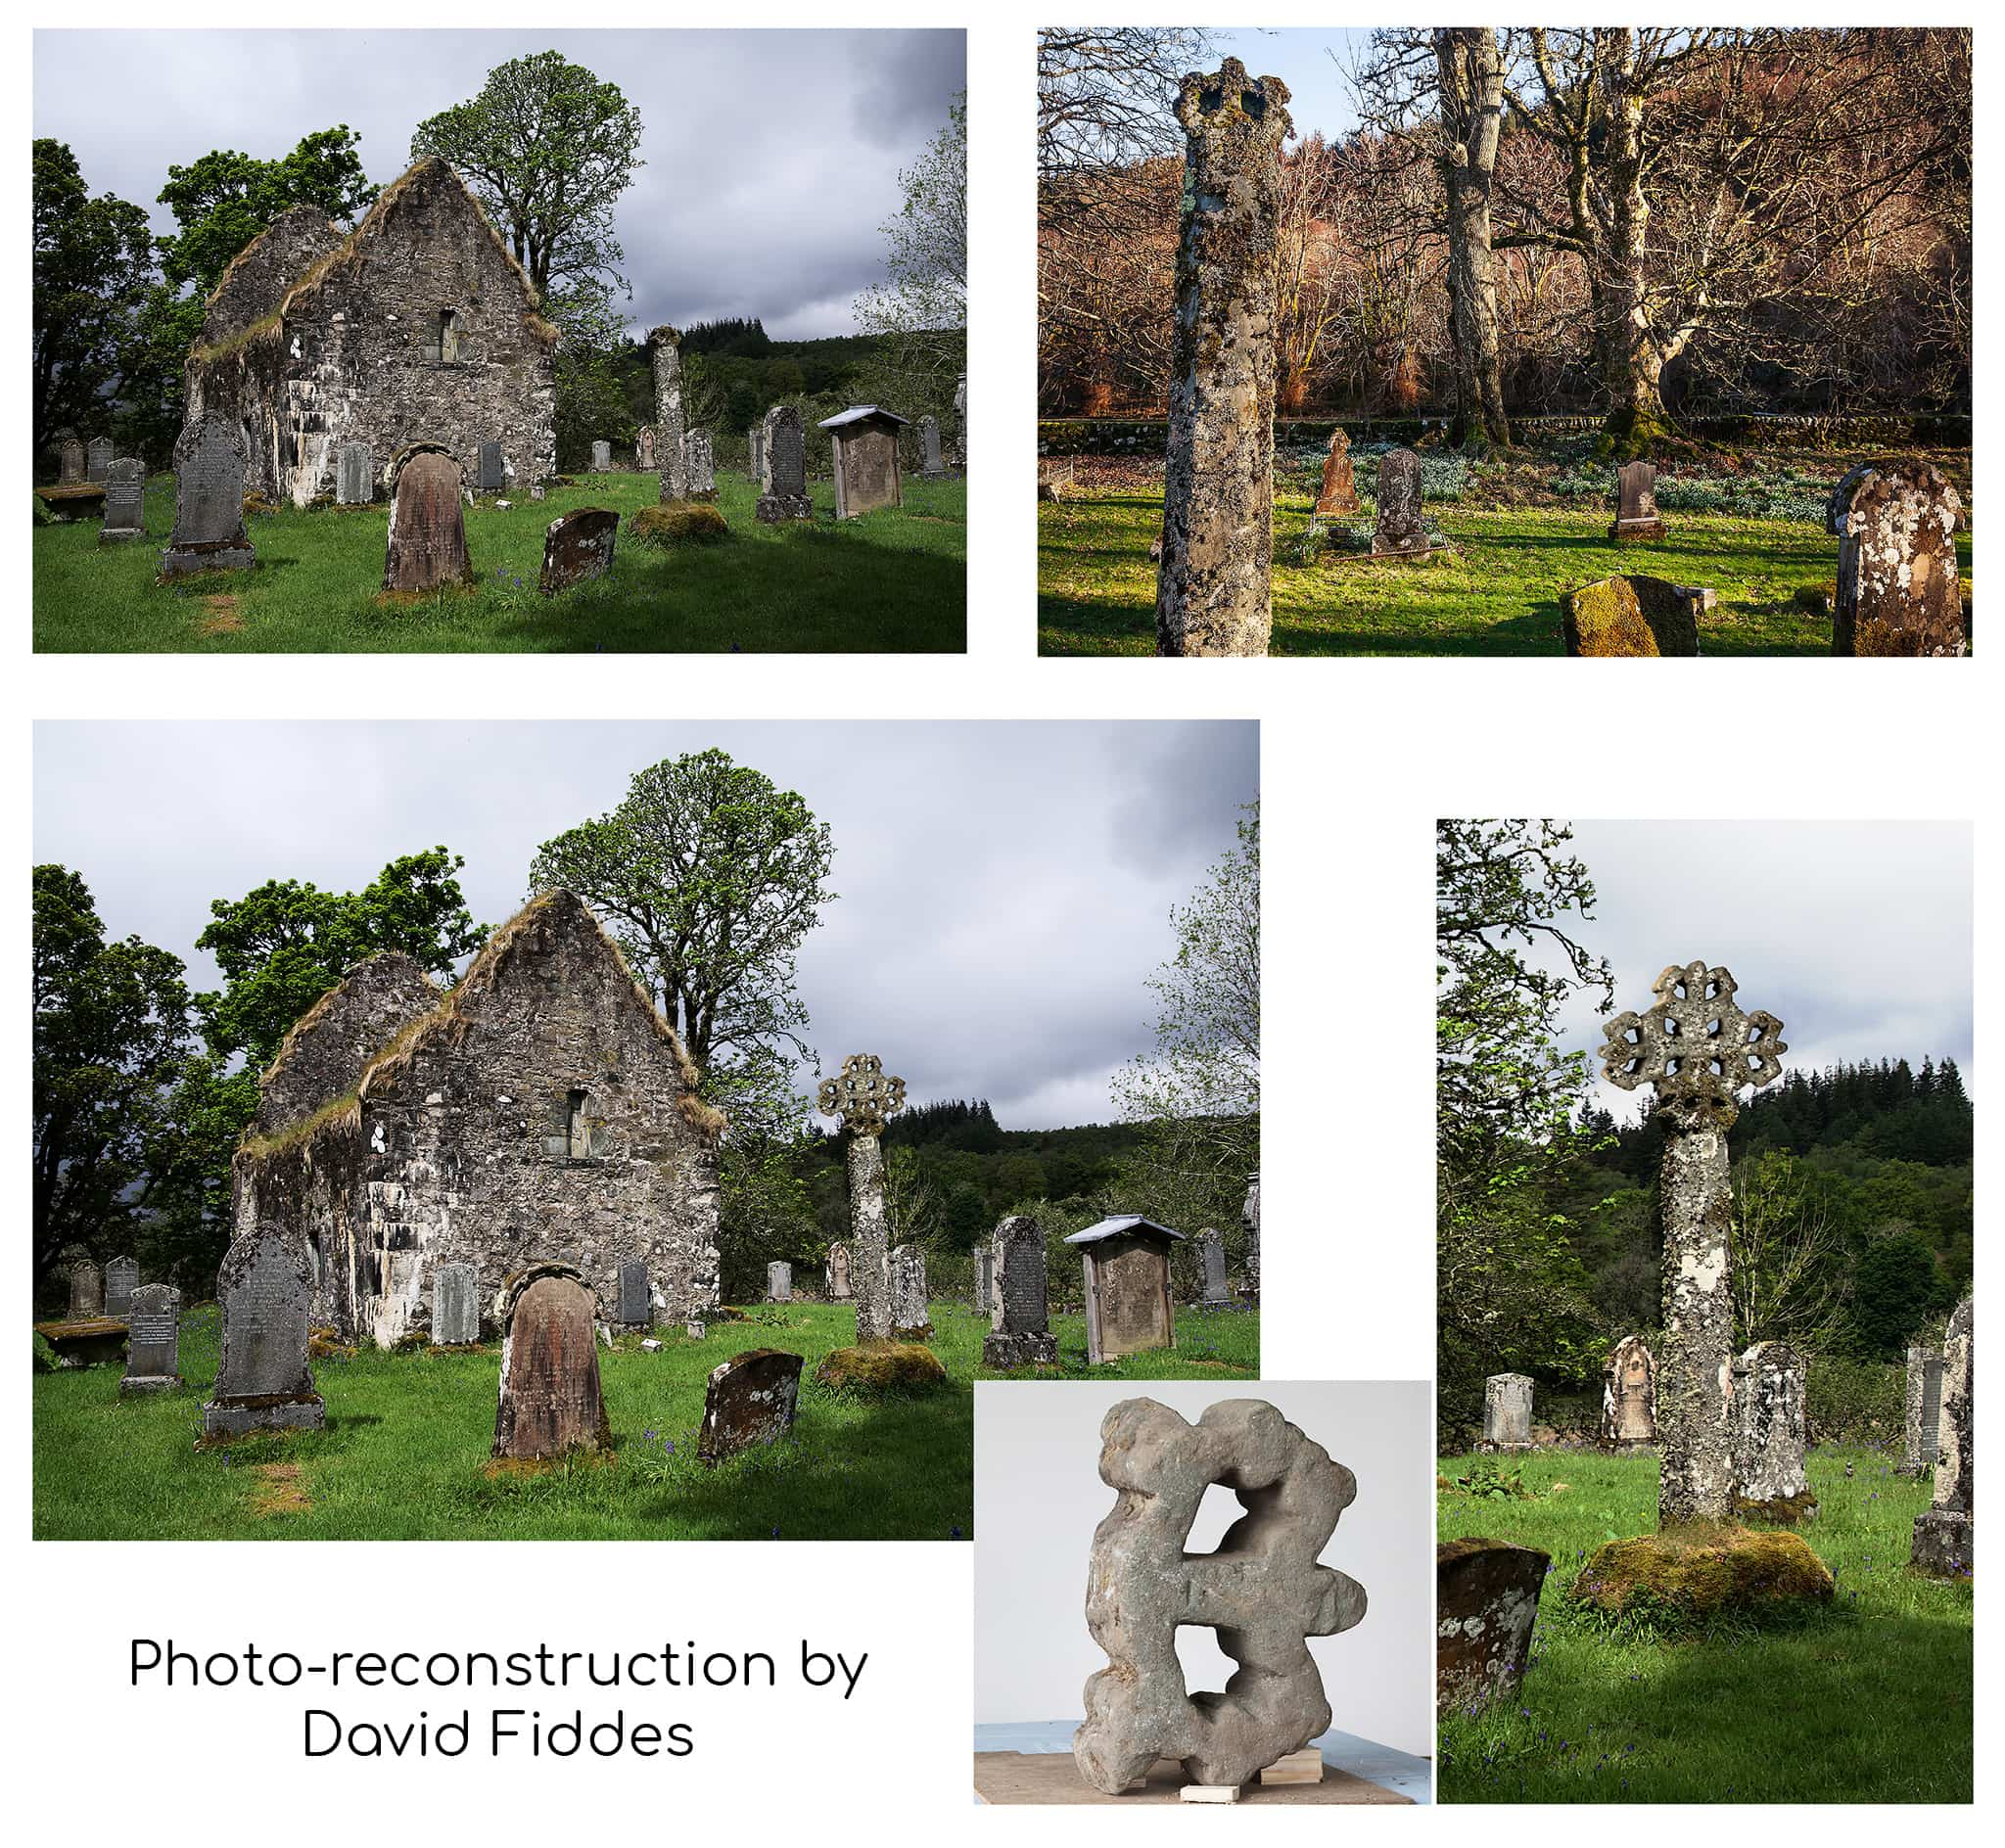 Photos showing the remaining octagonal shaft, separate fragment of the cross head, and a photo-reconstruction.